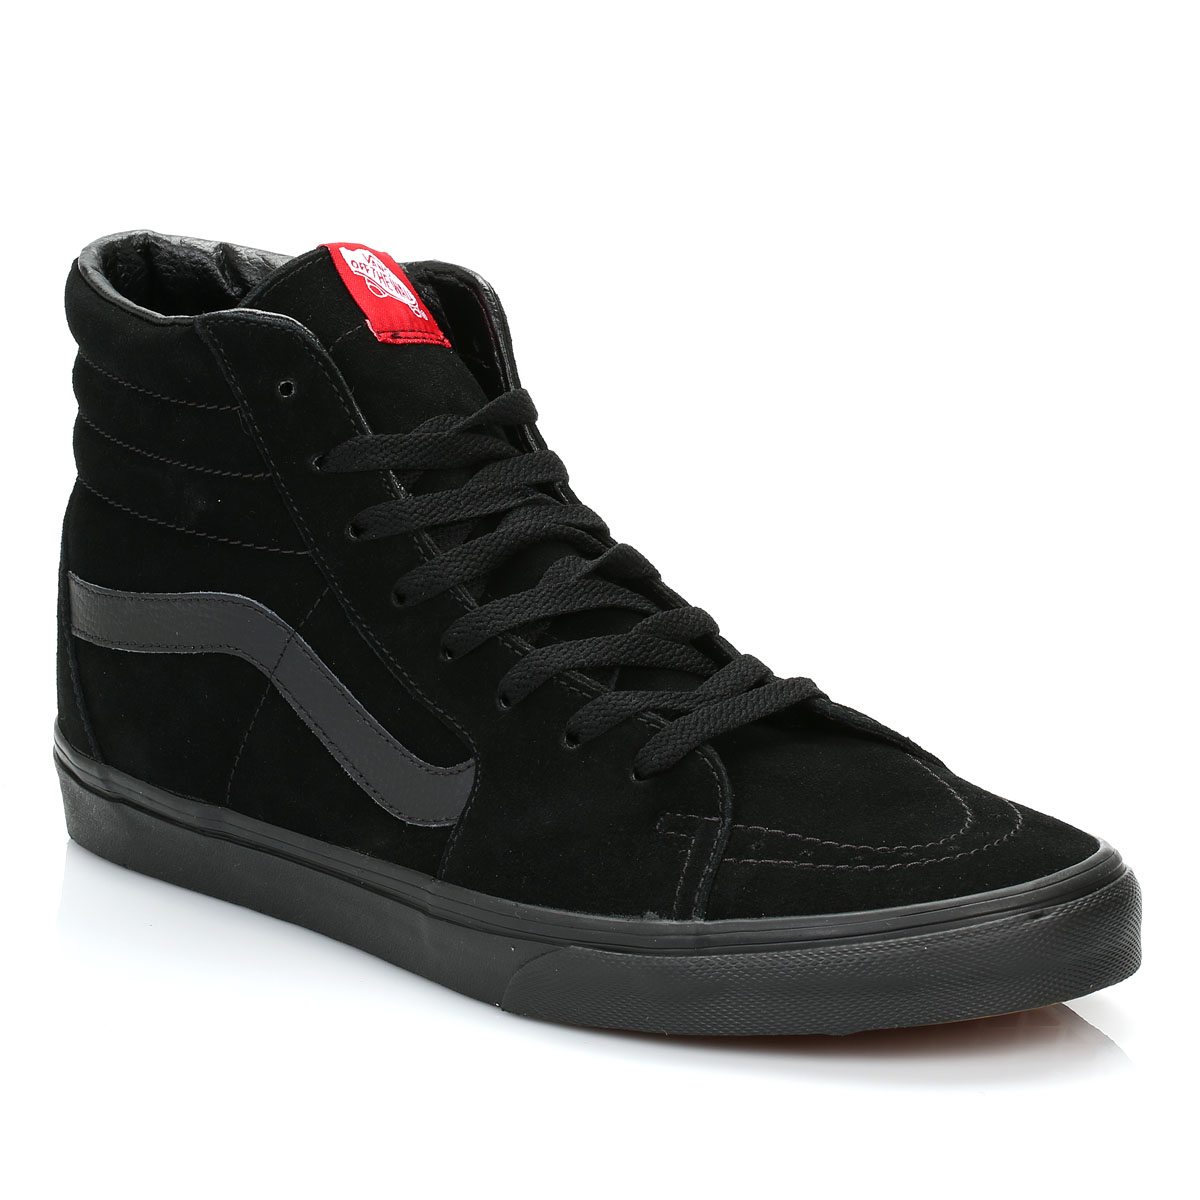 83eef667b6 Details about Vans Men High Tops Black SK8 Hi Suede Trainers LaceUp Sport  Shoes Casual VD5IBKA